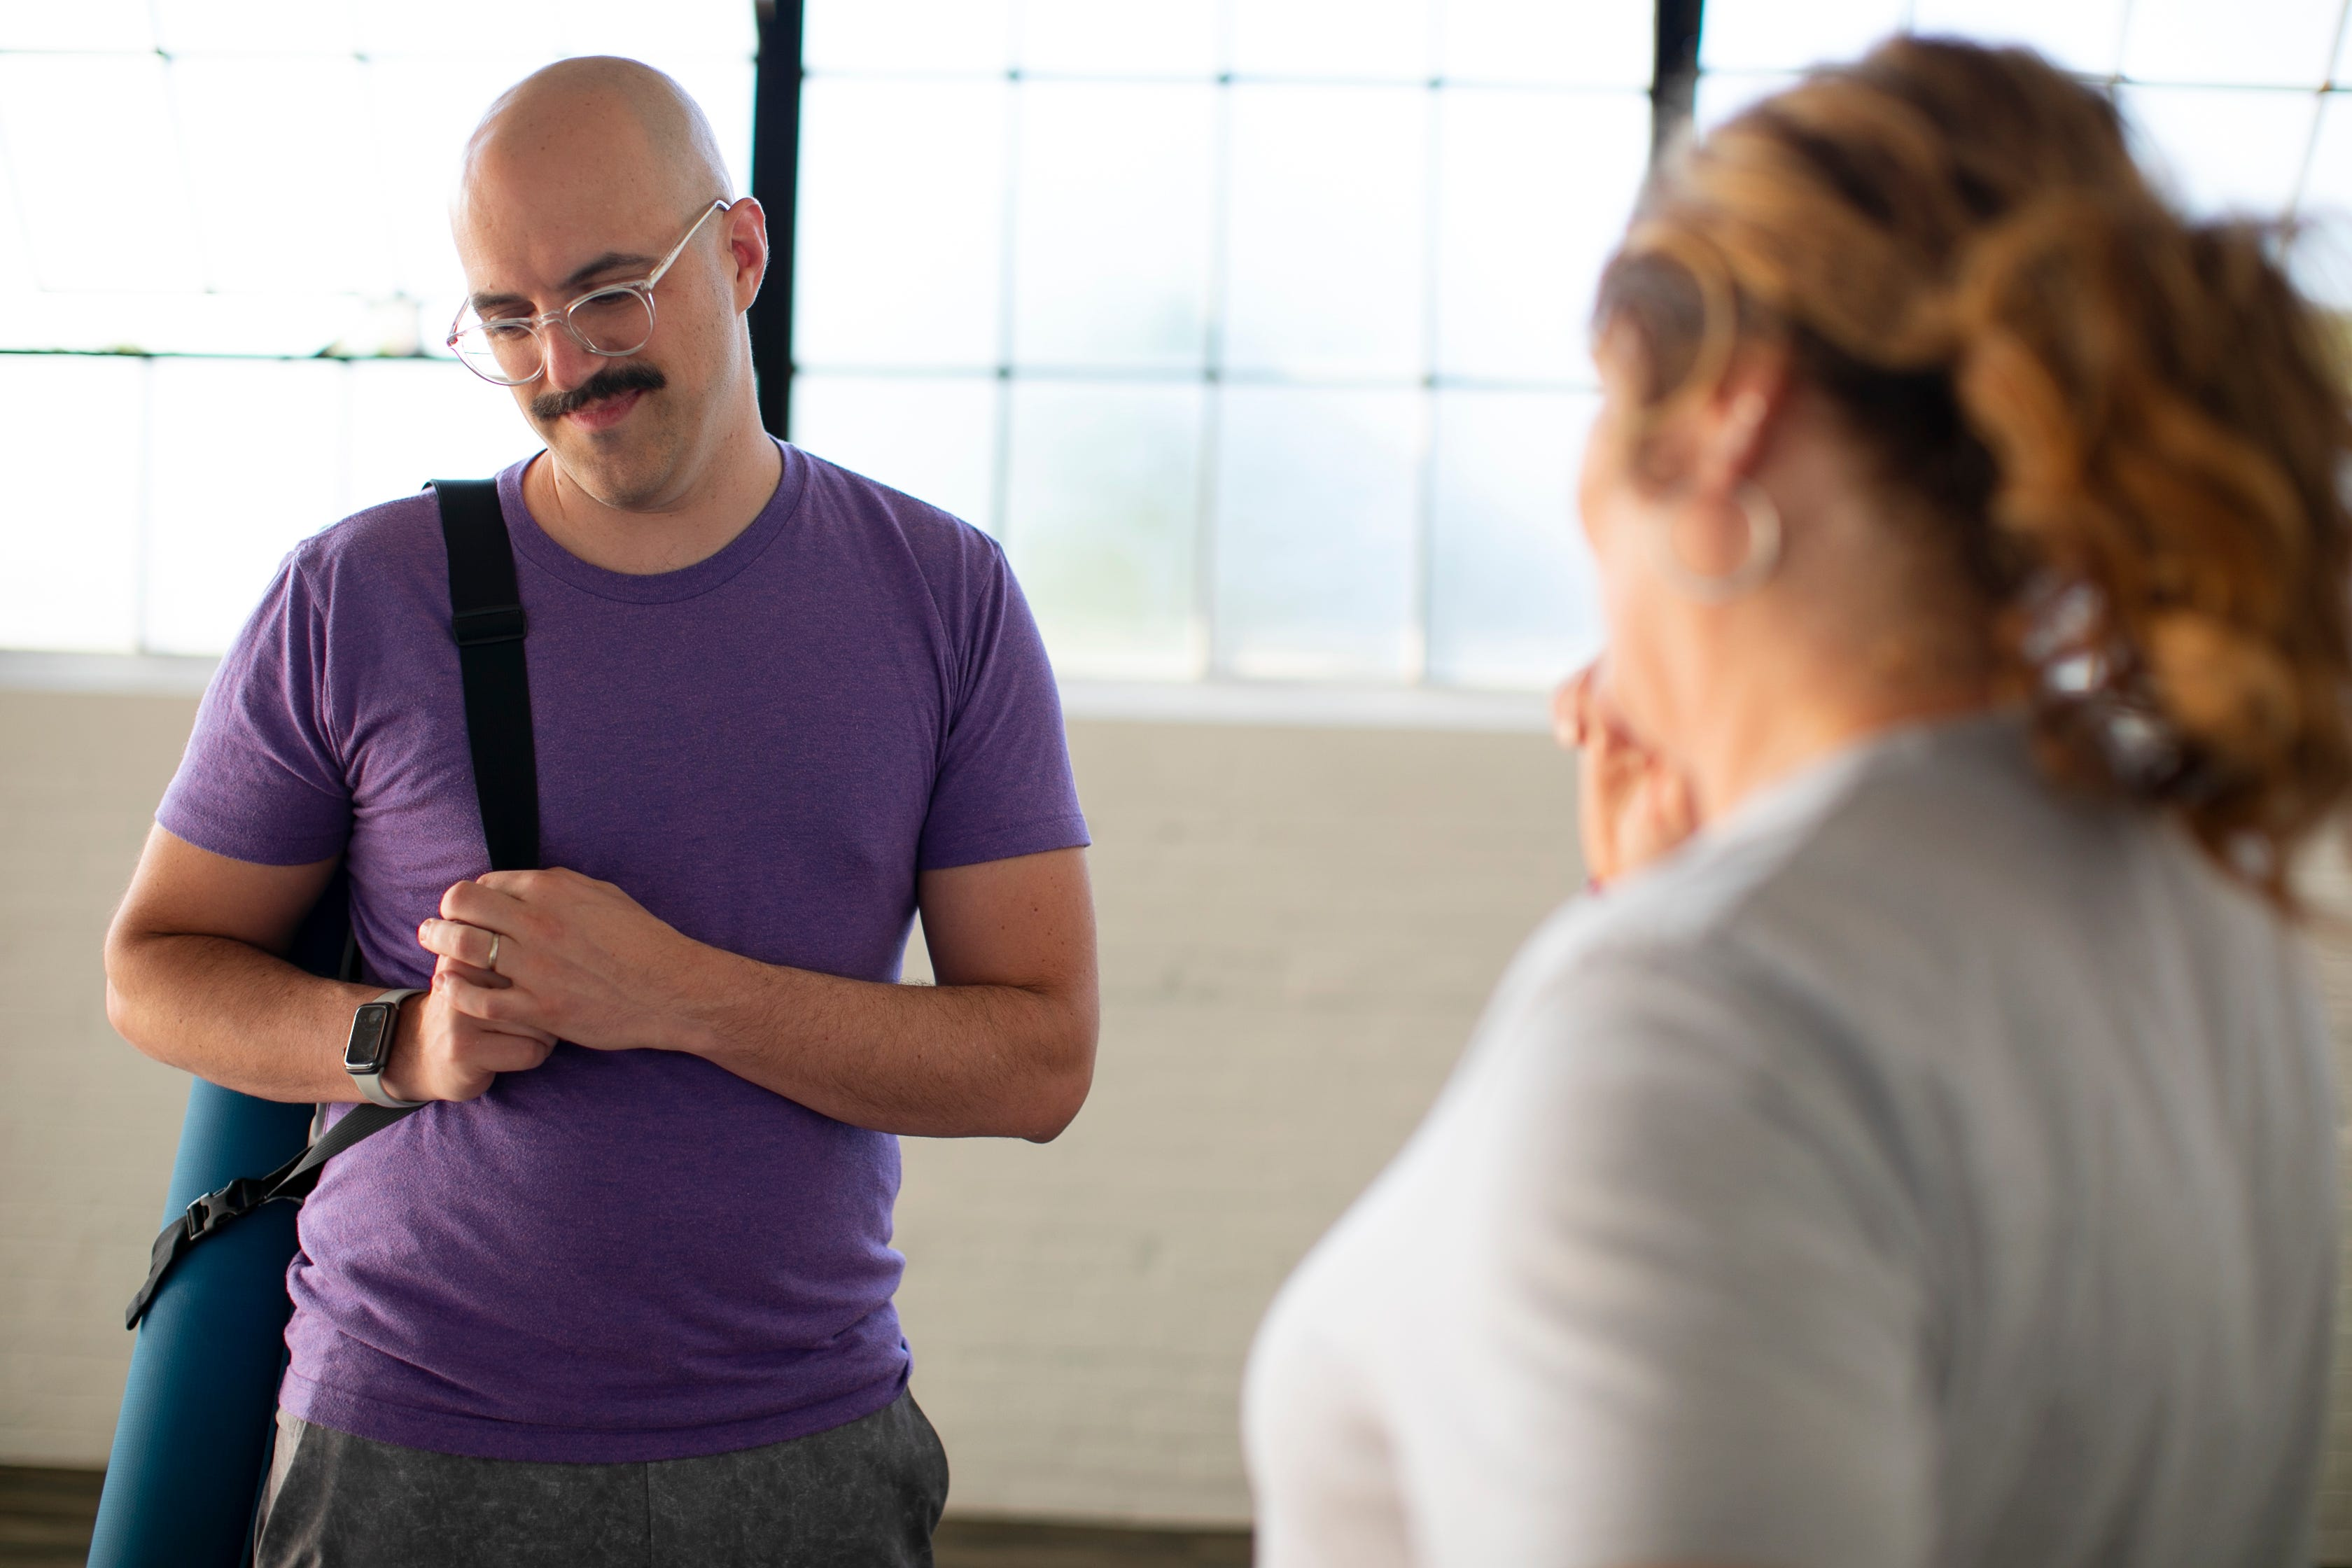 Yoga has taught Chris Graham to connect with his body, whereas before, he would often feel as if he was experiencing things from outside his own body.